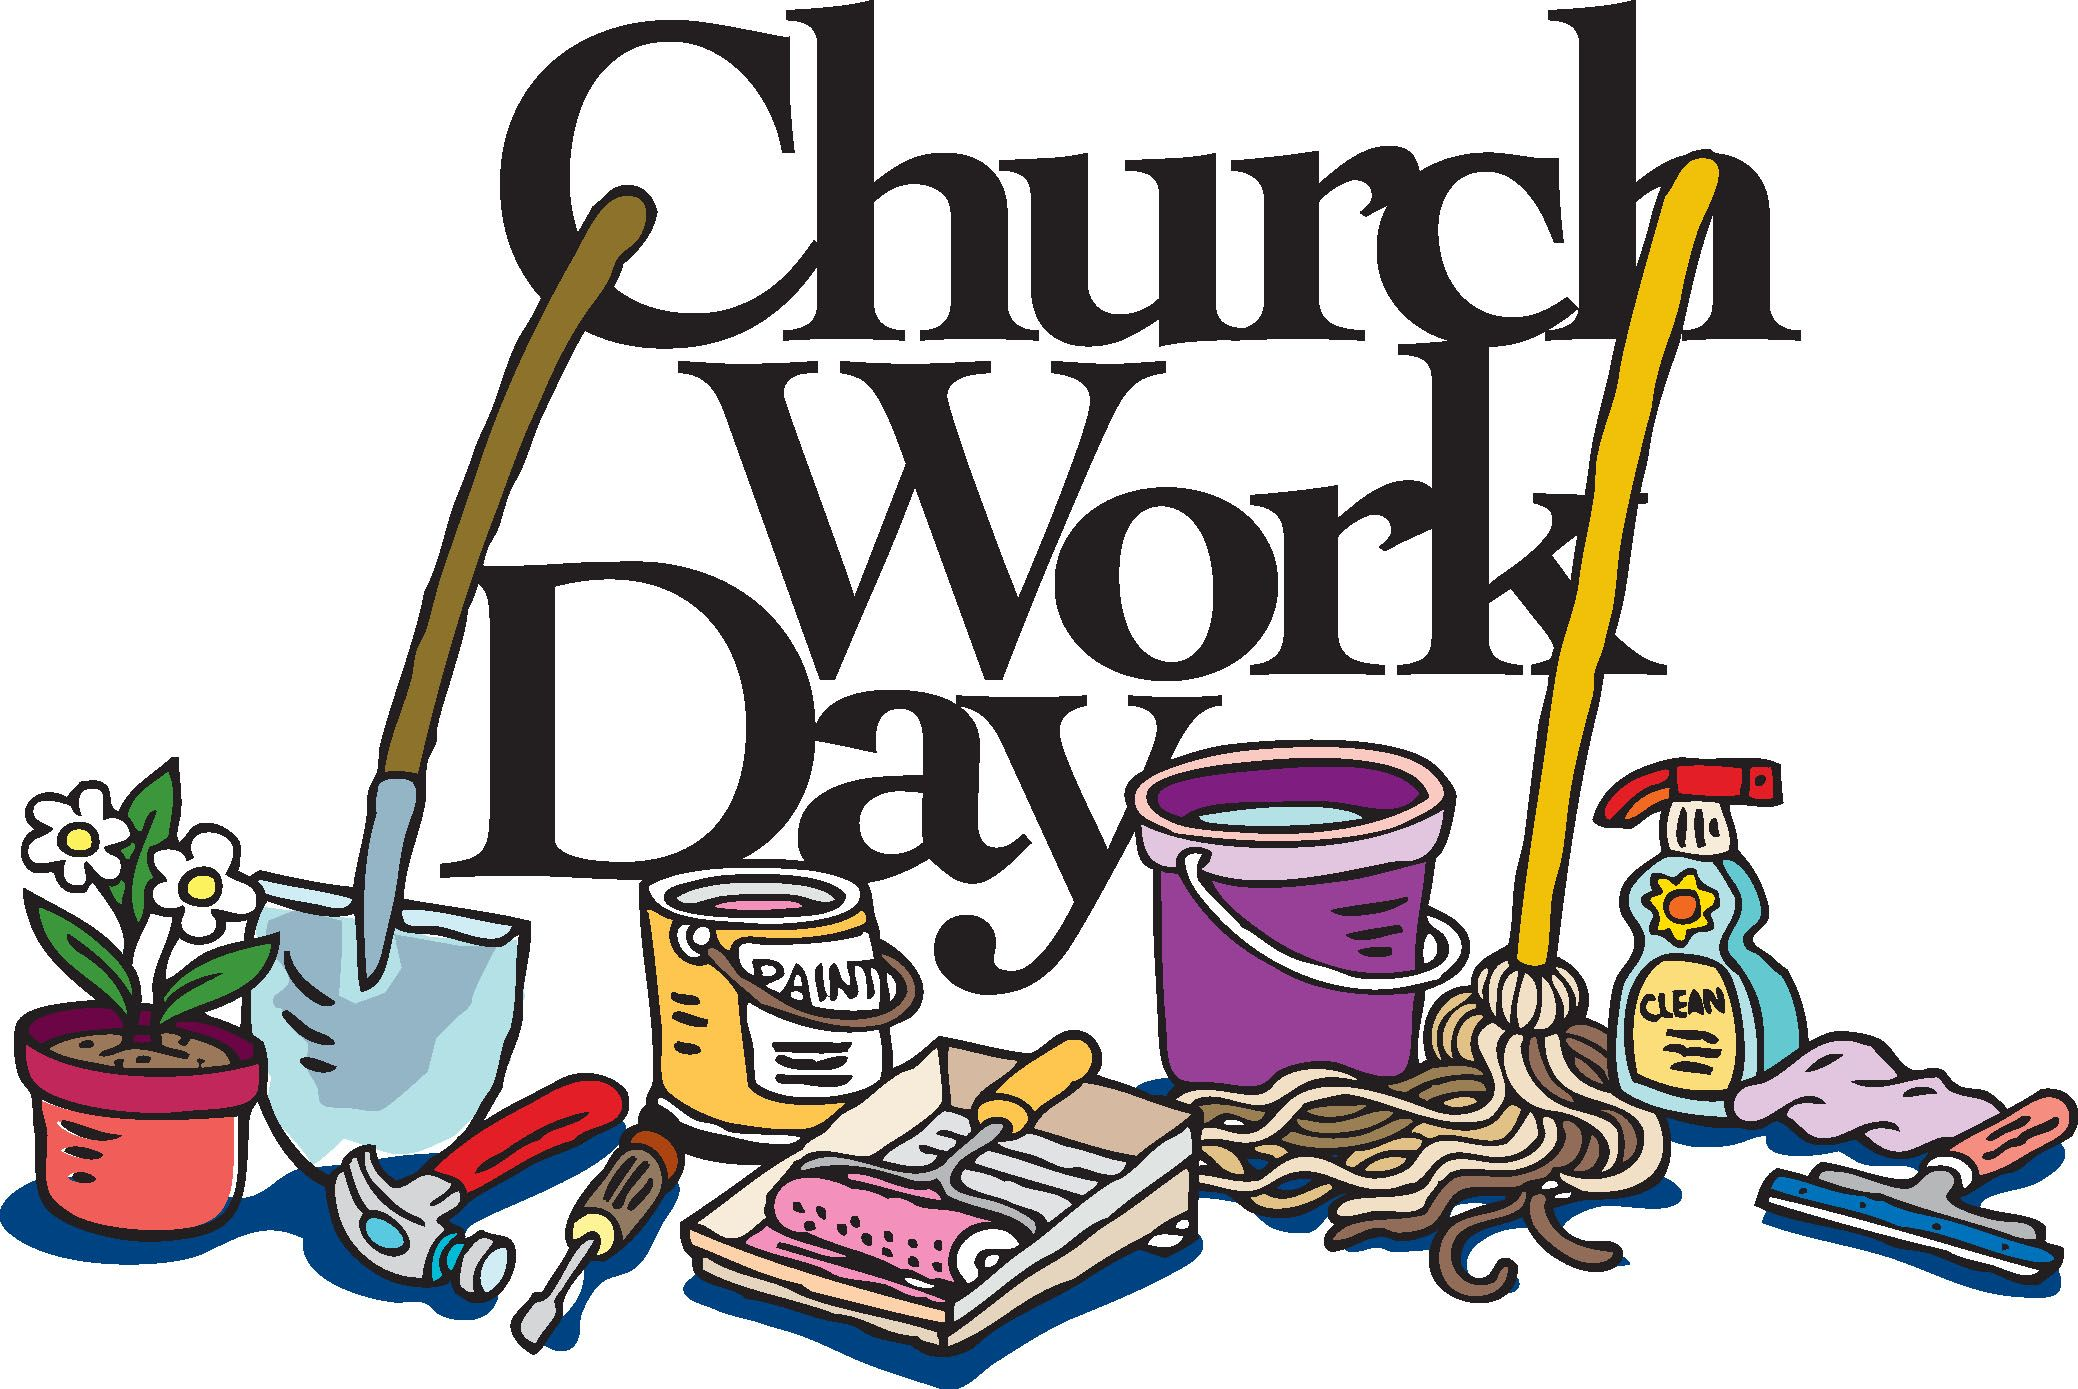 church work day clip art cliparts women s ministry pinterest rh pinterest com free clipart for church homecoming church homecoming clip art free